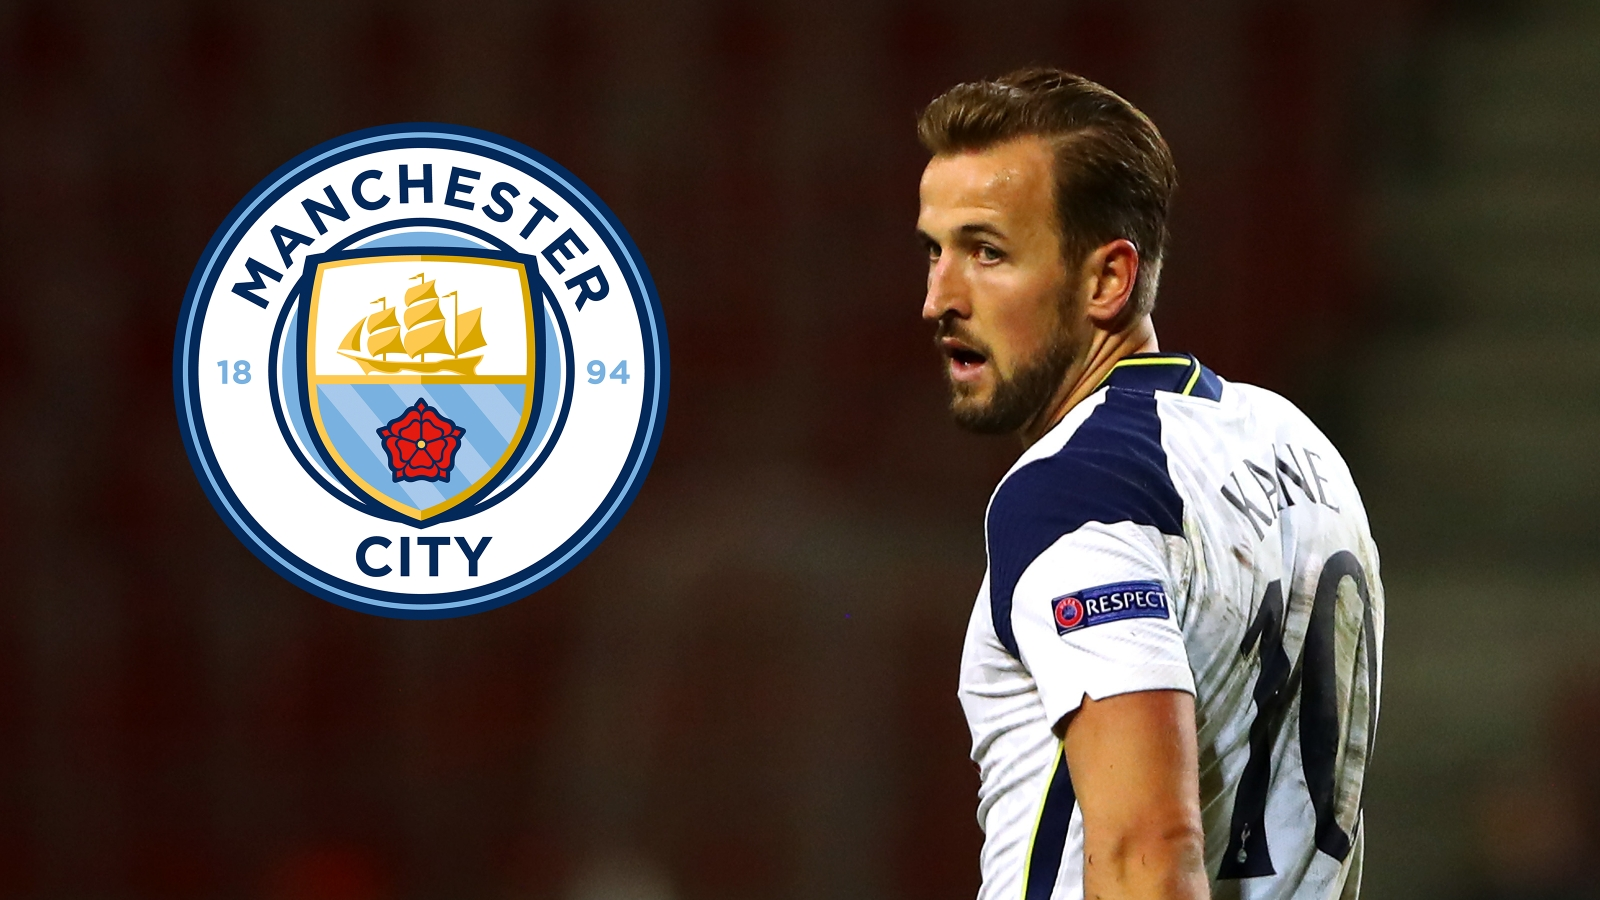 Transfer news and rumours LIVE: Manchester City plot £90m Kane move